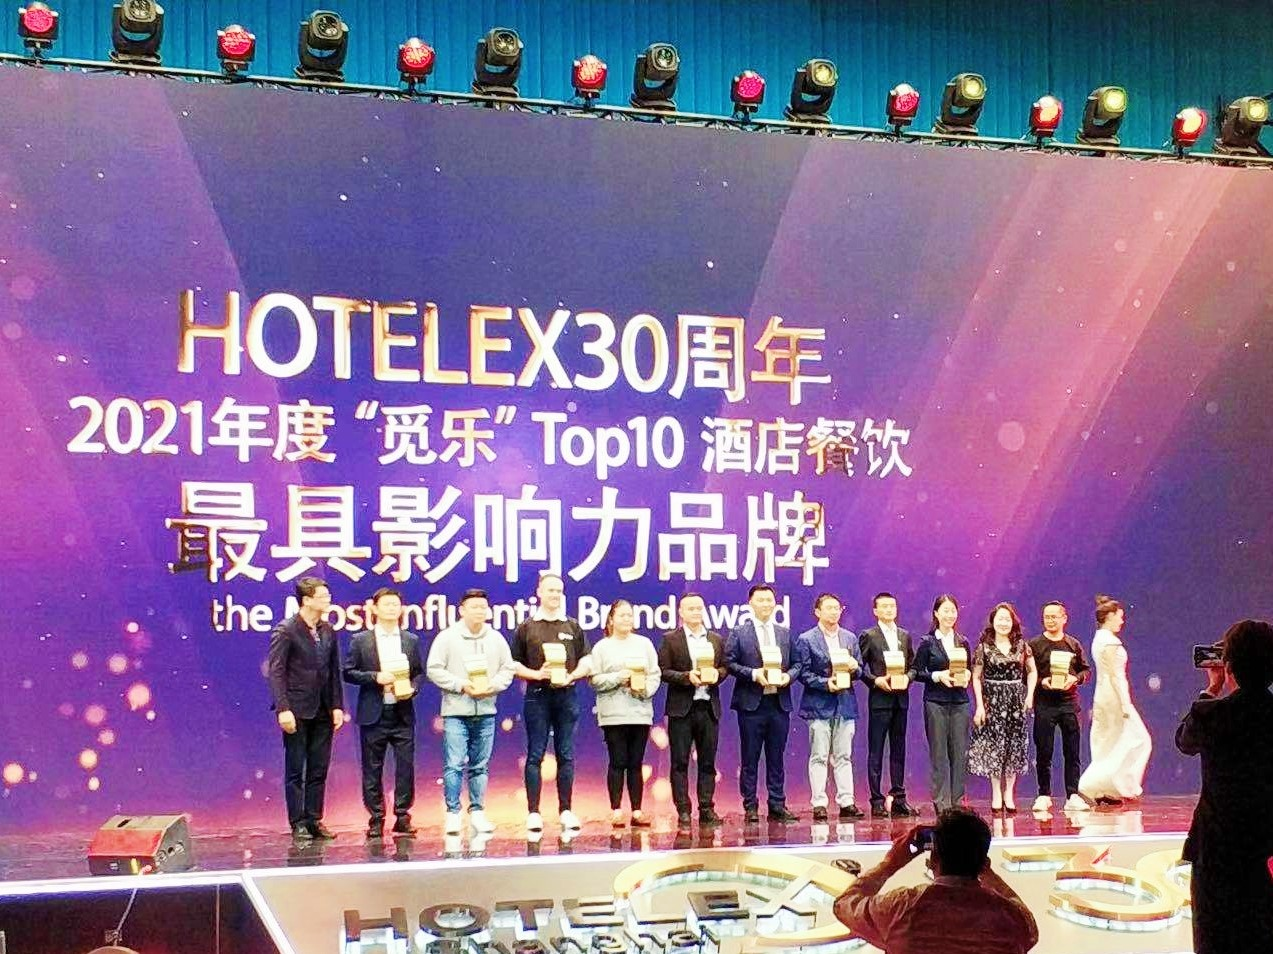 DKSH recognized to be among the top 10 most influential brands at HOTELEX 2021